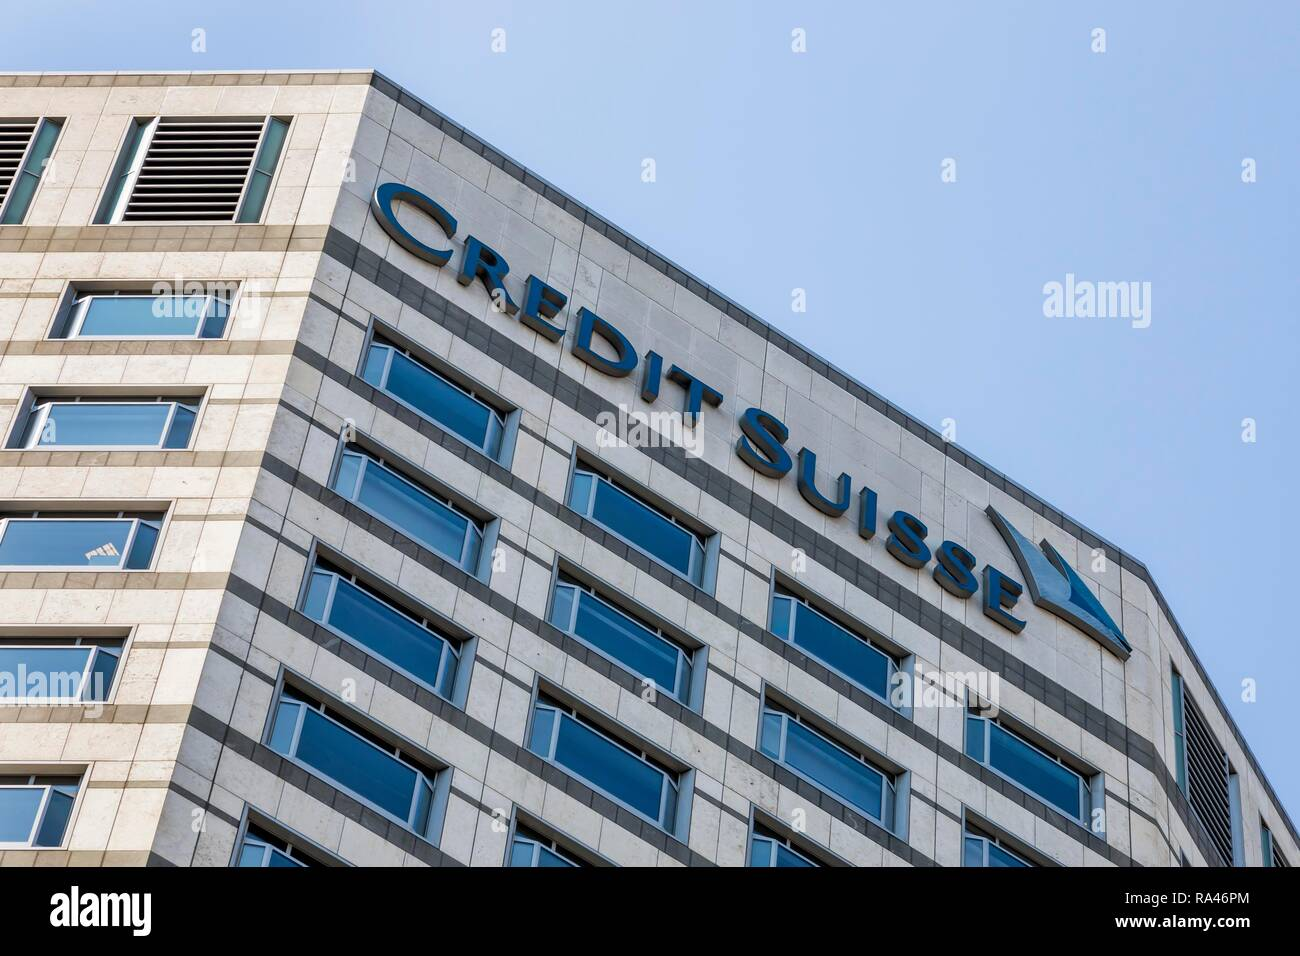 The Swiss bank Credit Suisse, financial and banking district Canary Wharf, London, United Kingdom - Stock Image